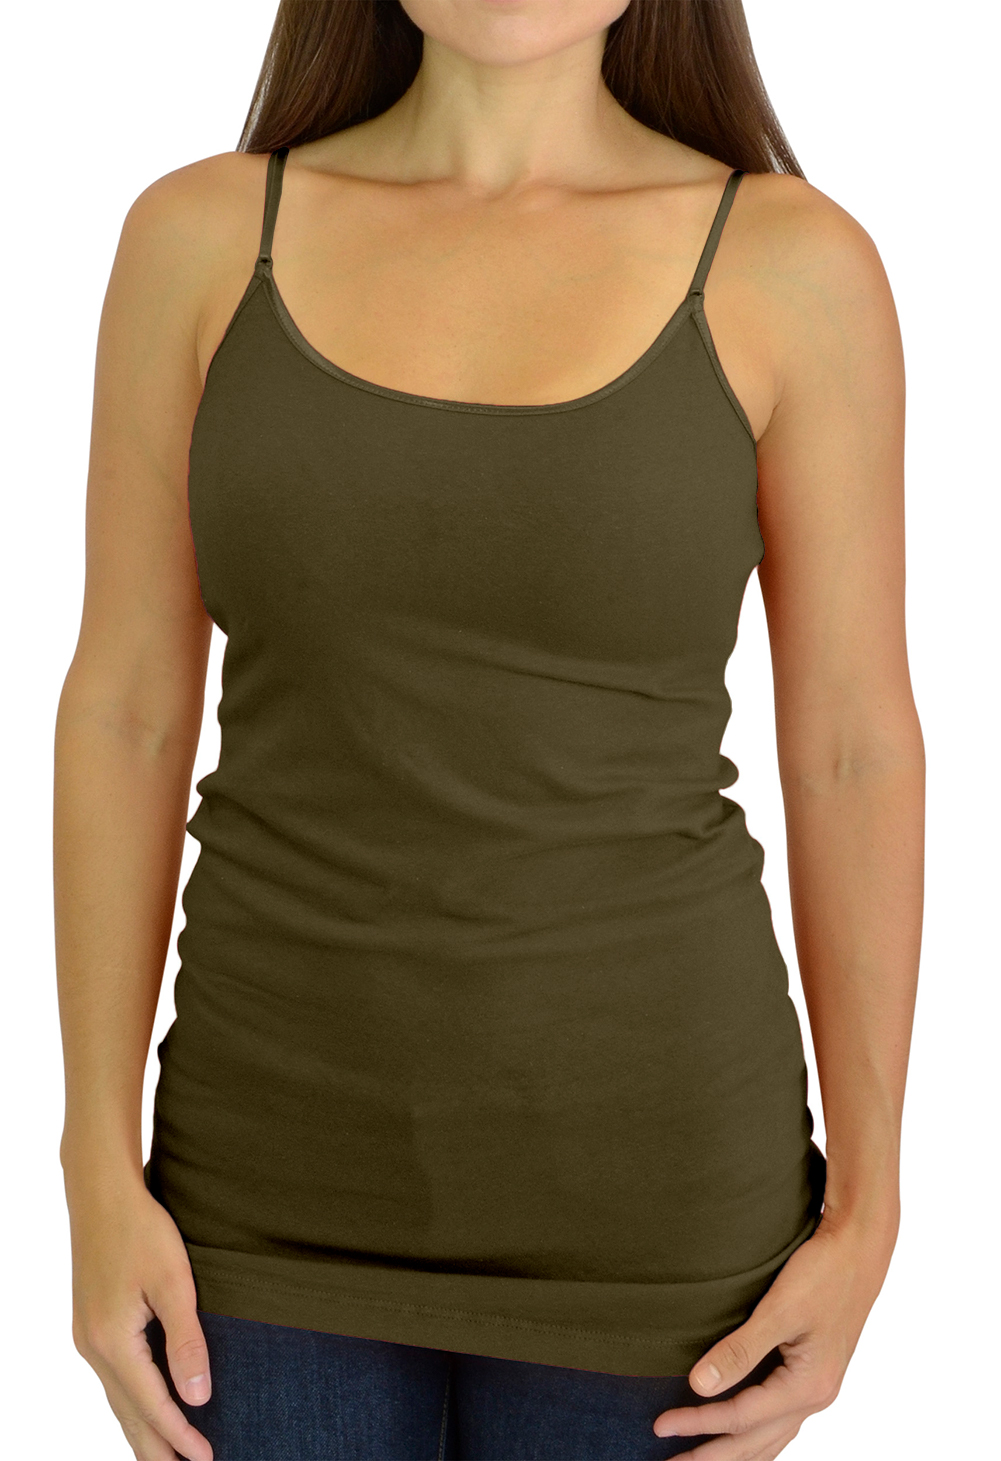 Belle Donne Women's Adjustable SpaghettiStrap TankTop Cami - Olive Small